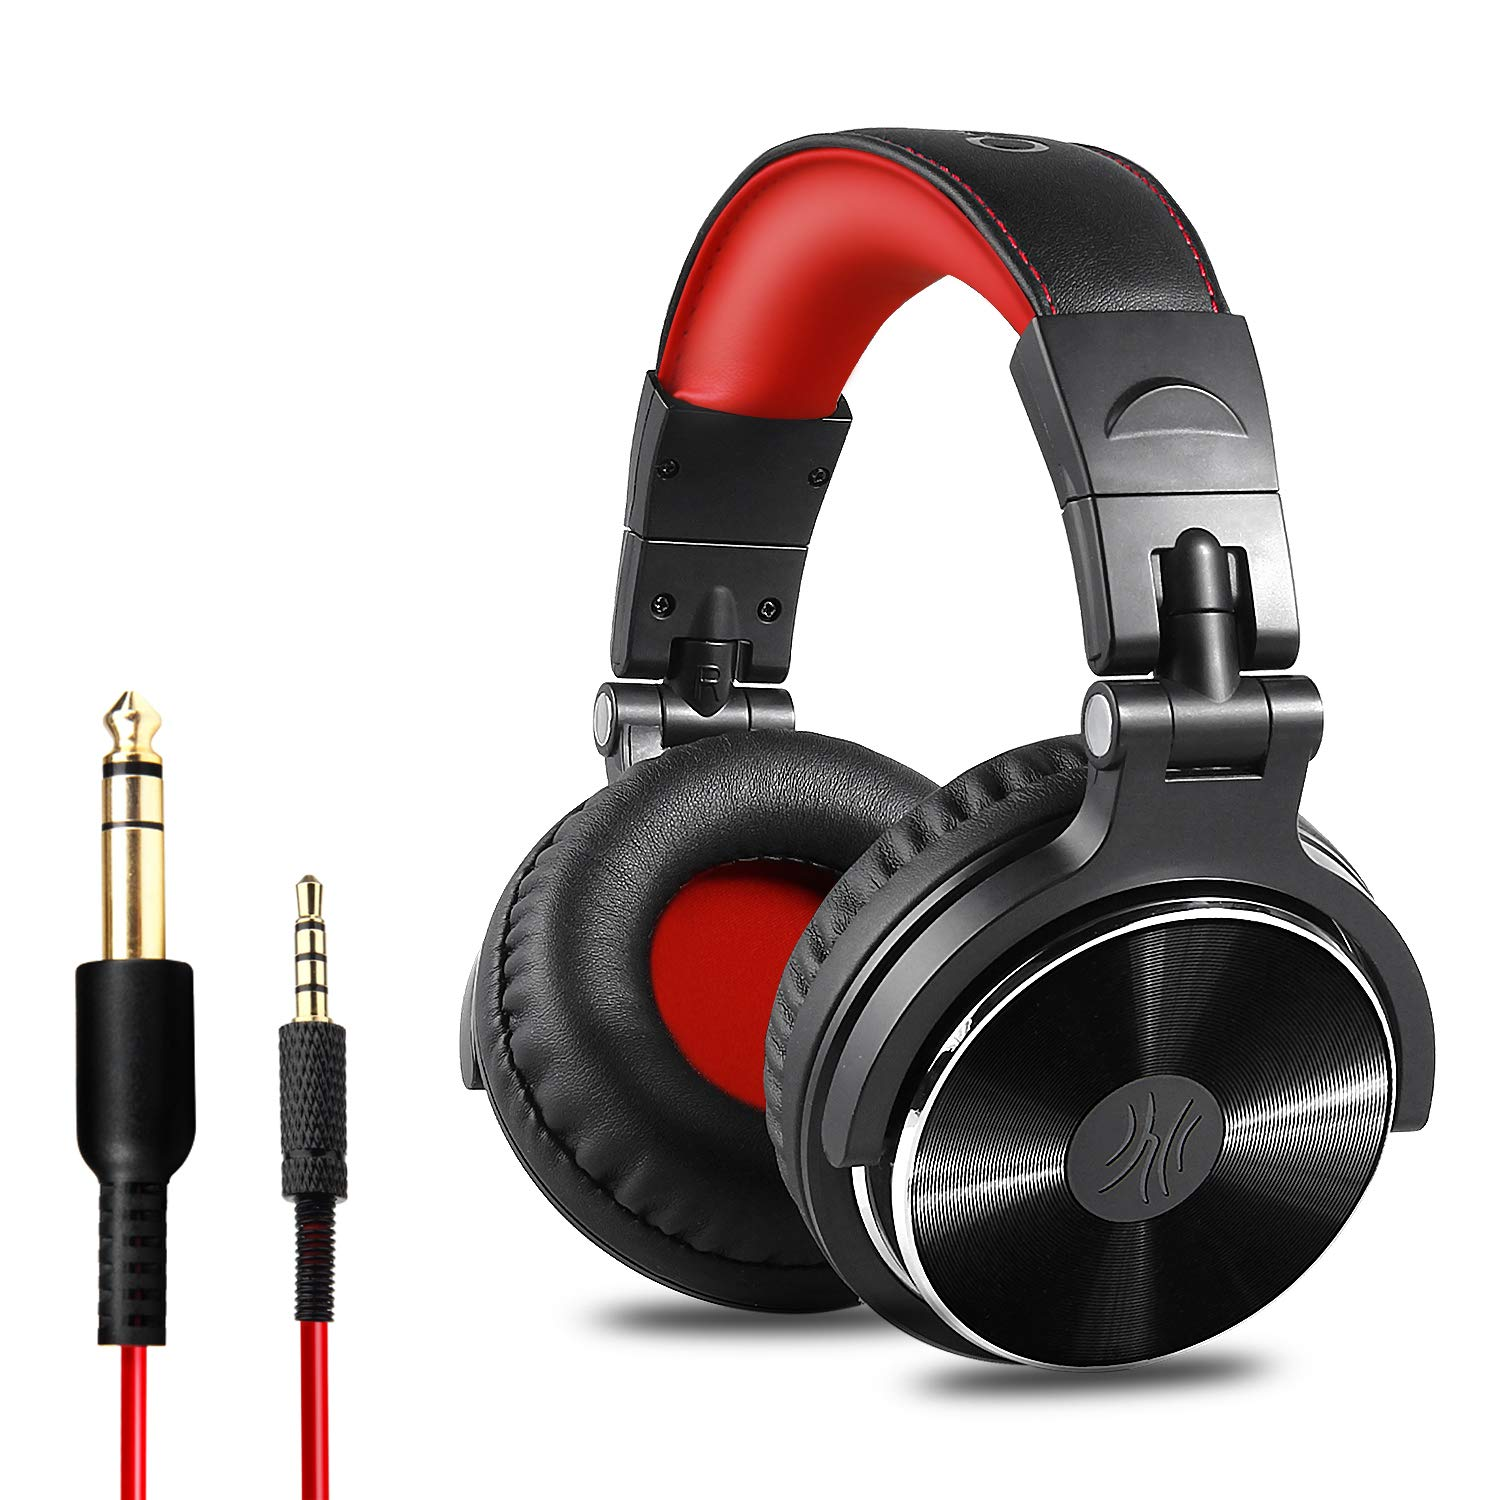 OneOdio Adapter-Free Closed Back Over-Ear DJ Stereo Monitor Headphones, Professional Studio Monitor & Mixing, Telescopic Arms with Scale, Newest 50mm Neodymium Drivers- Glossy Finsh OneOdio USA 709466429447